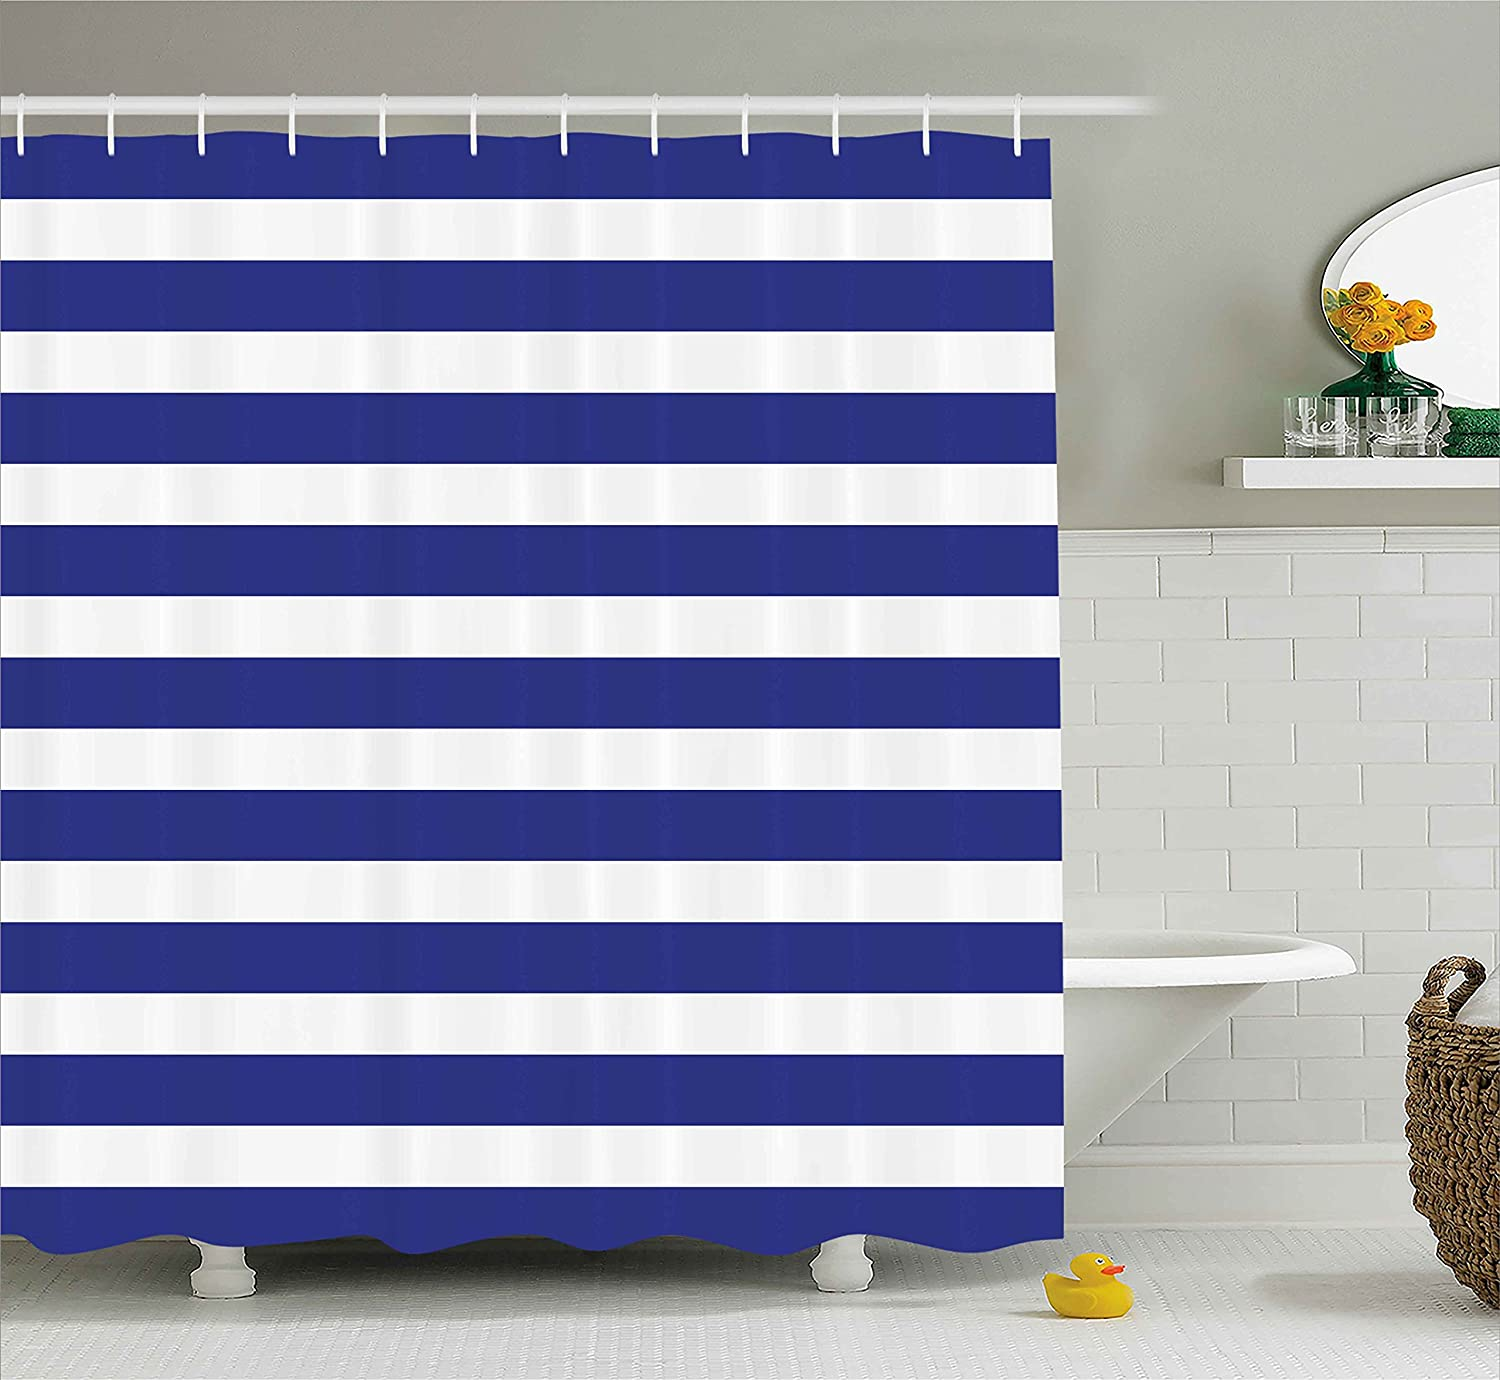 Ambesonne Striped Shower Curtain Nautical Marine Style Navy Blue And White Sailor Theme Geometric Pattern Art Print Fabric Bathroom Decor Set With Hooks